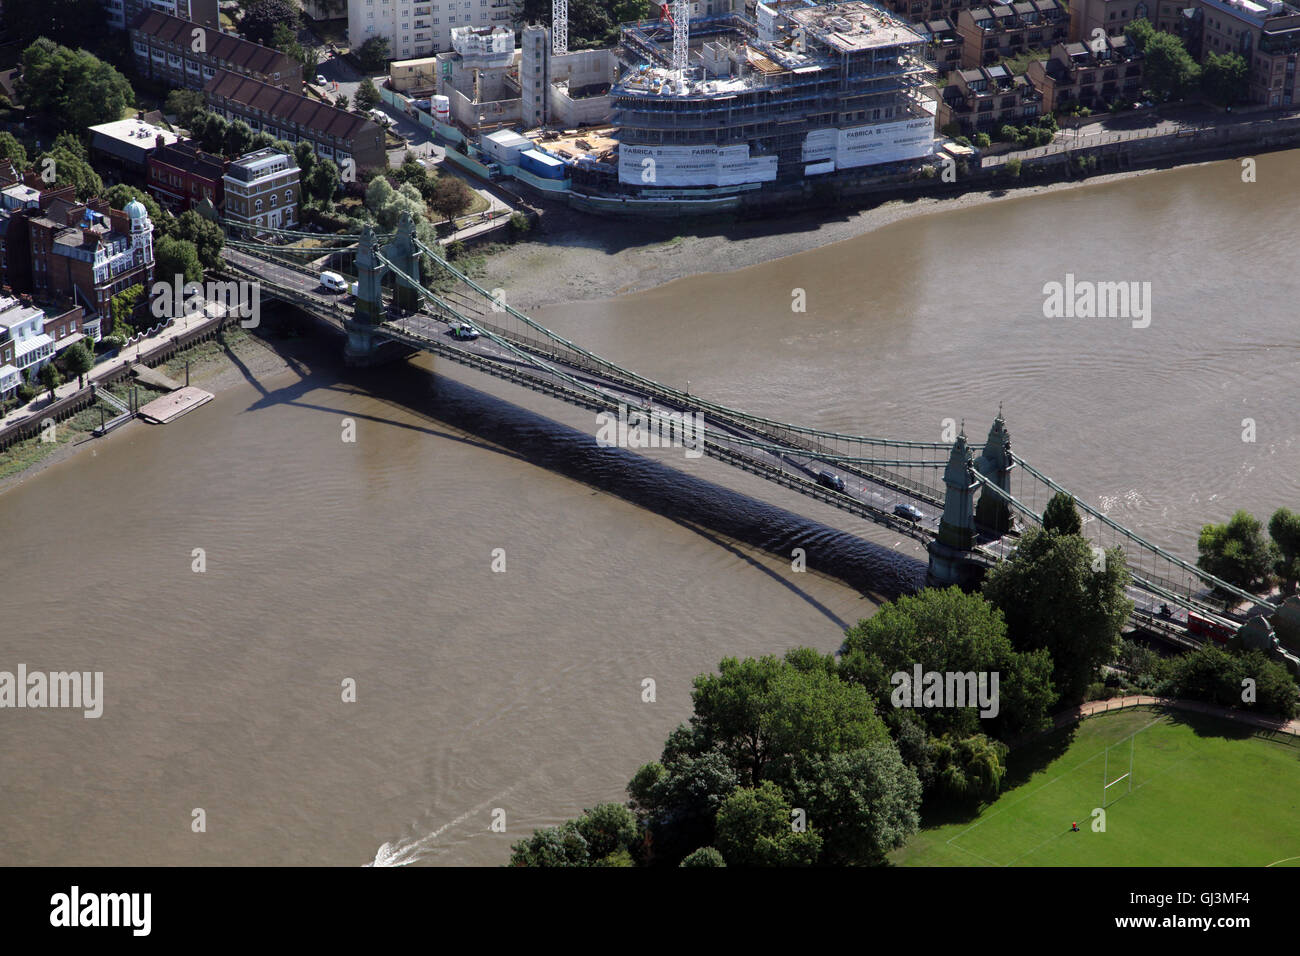 aerial view of Hammersmith Bridge over the River Thames, London, UK - Stock Image